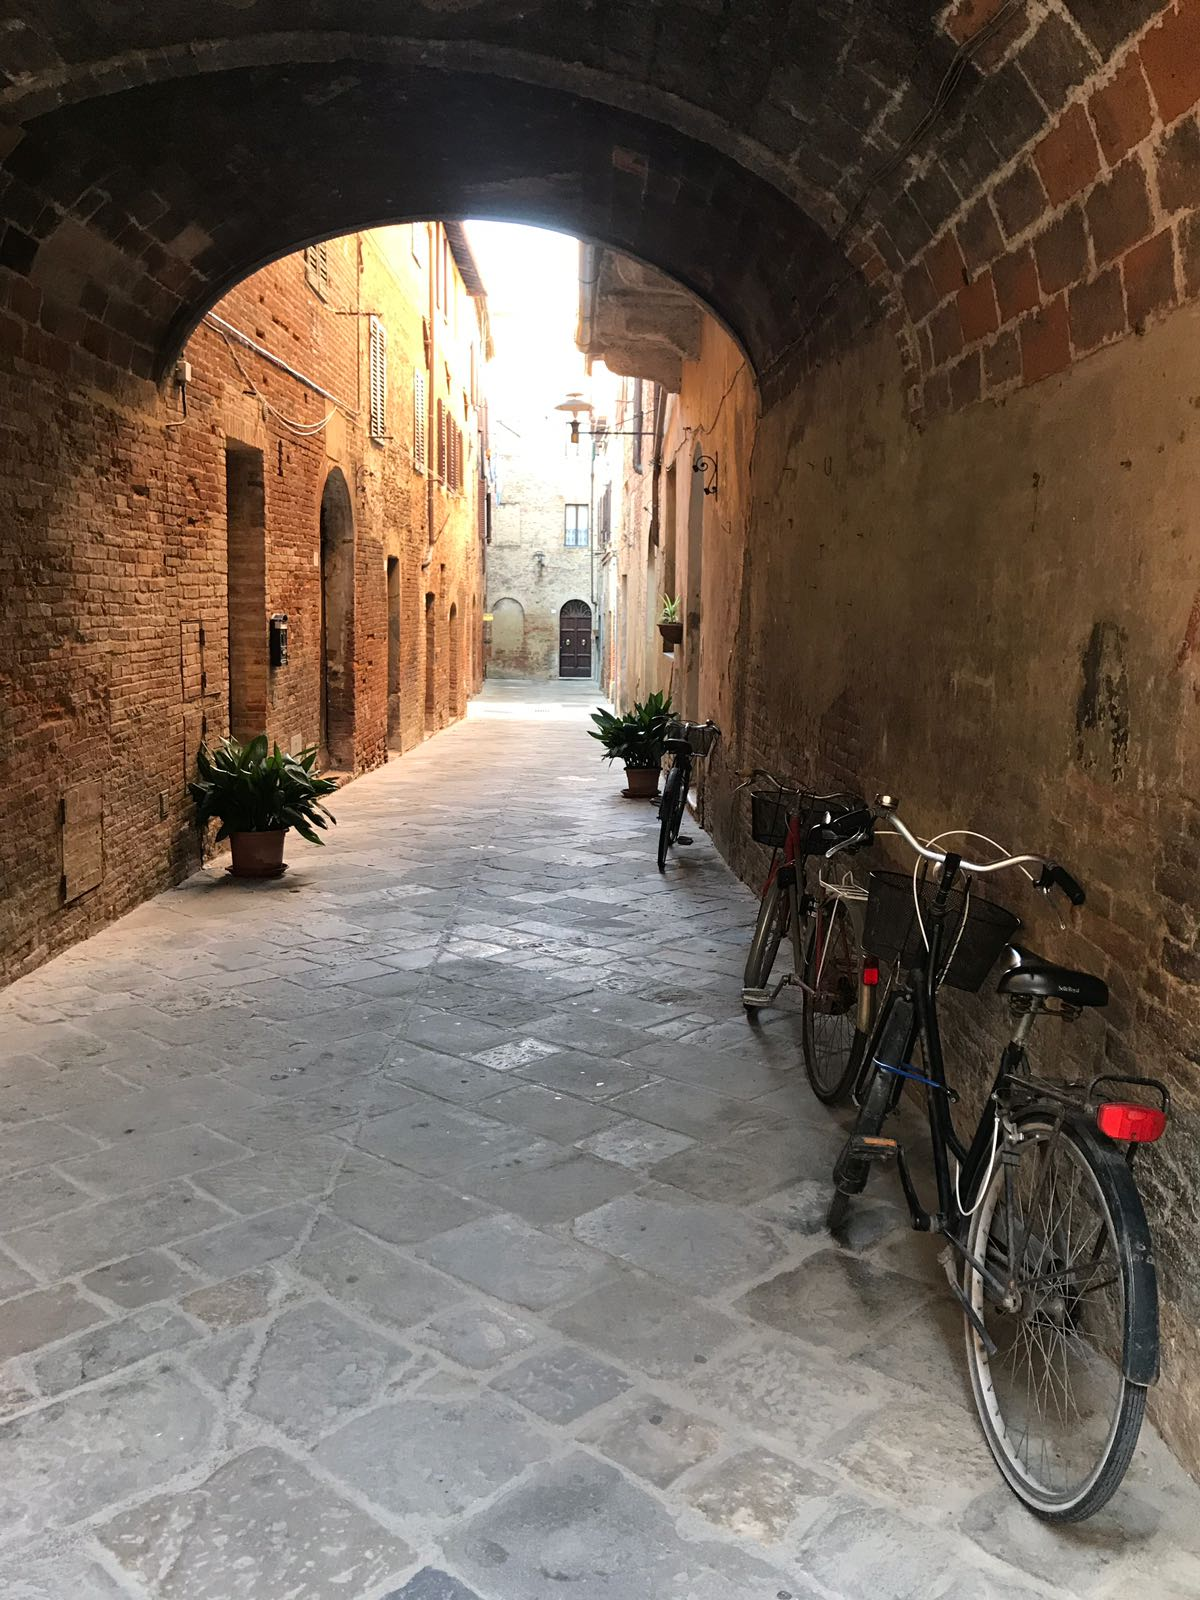 An alleyway in Buon Convento with bicycles propped against the wall